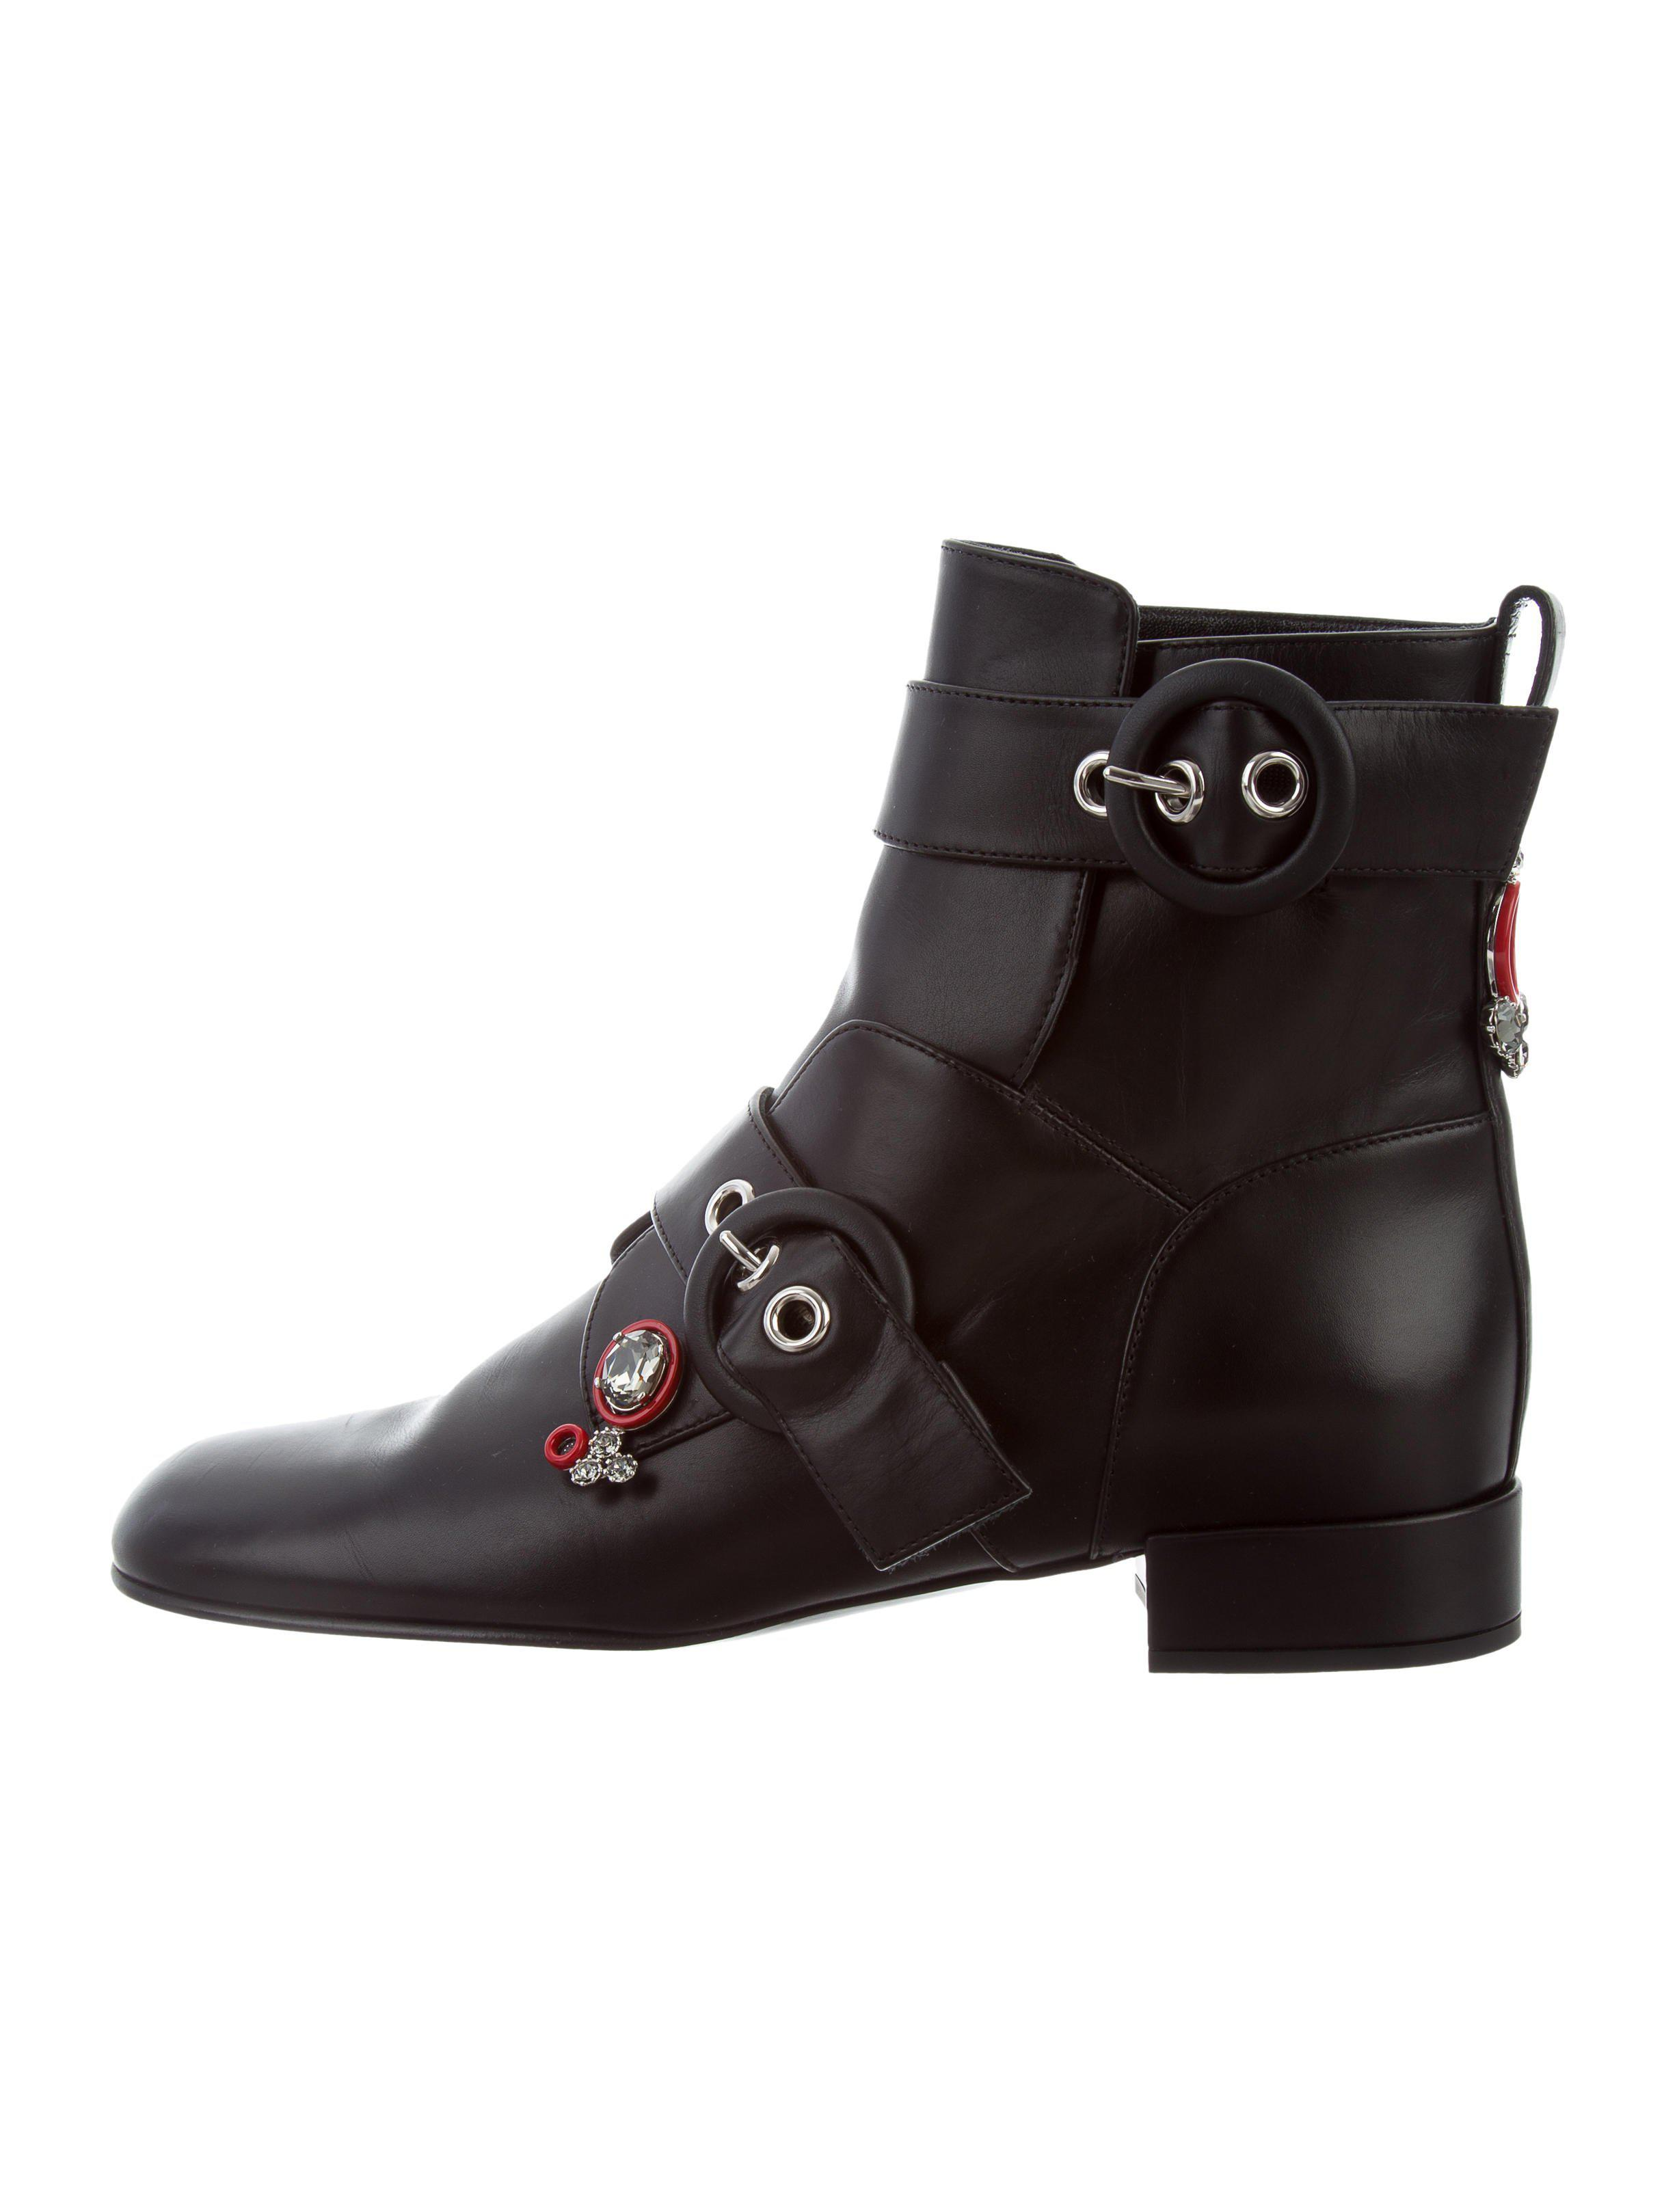 Dior Boots GATSBY leather jewellery ornament OESVaoIZn